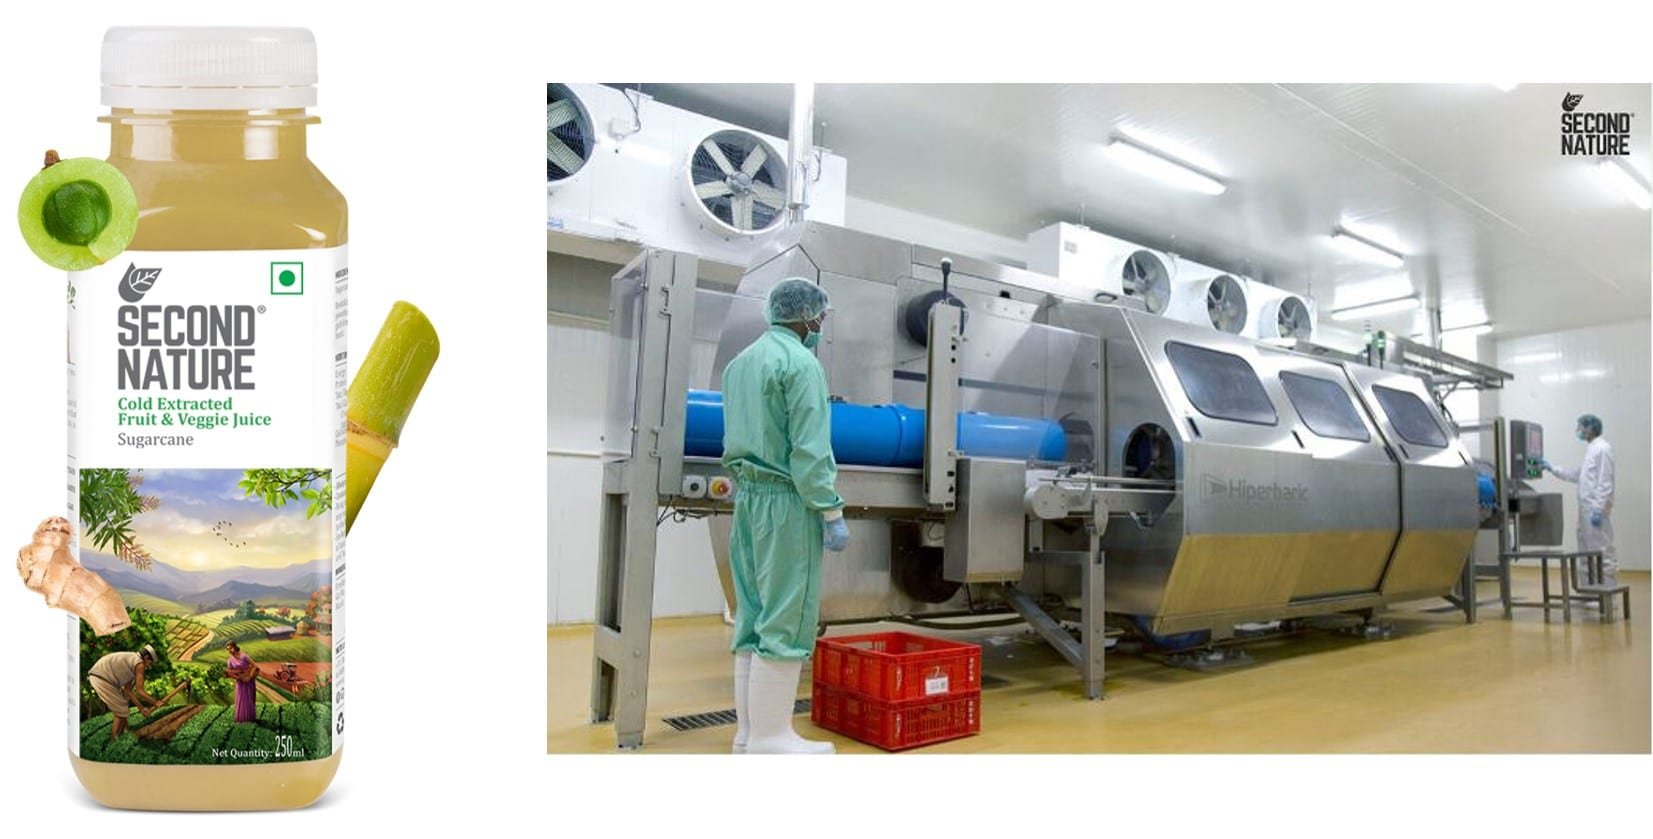 Figure 4: Sugarcane juice commercialized by Second Nature, and their HPP Hiperbaric machine facilities.